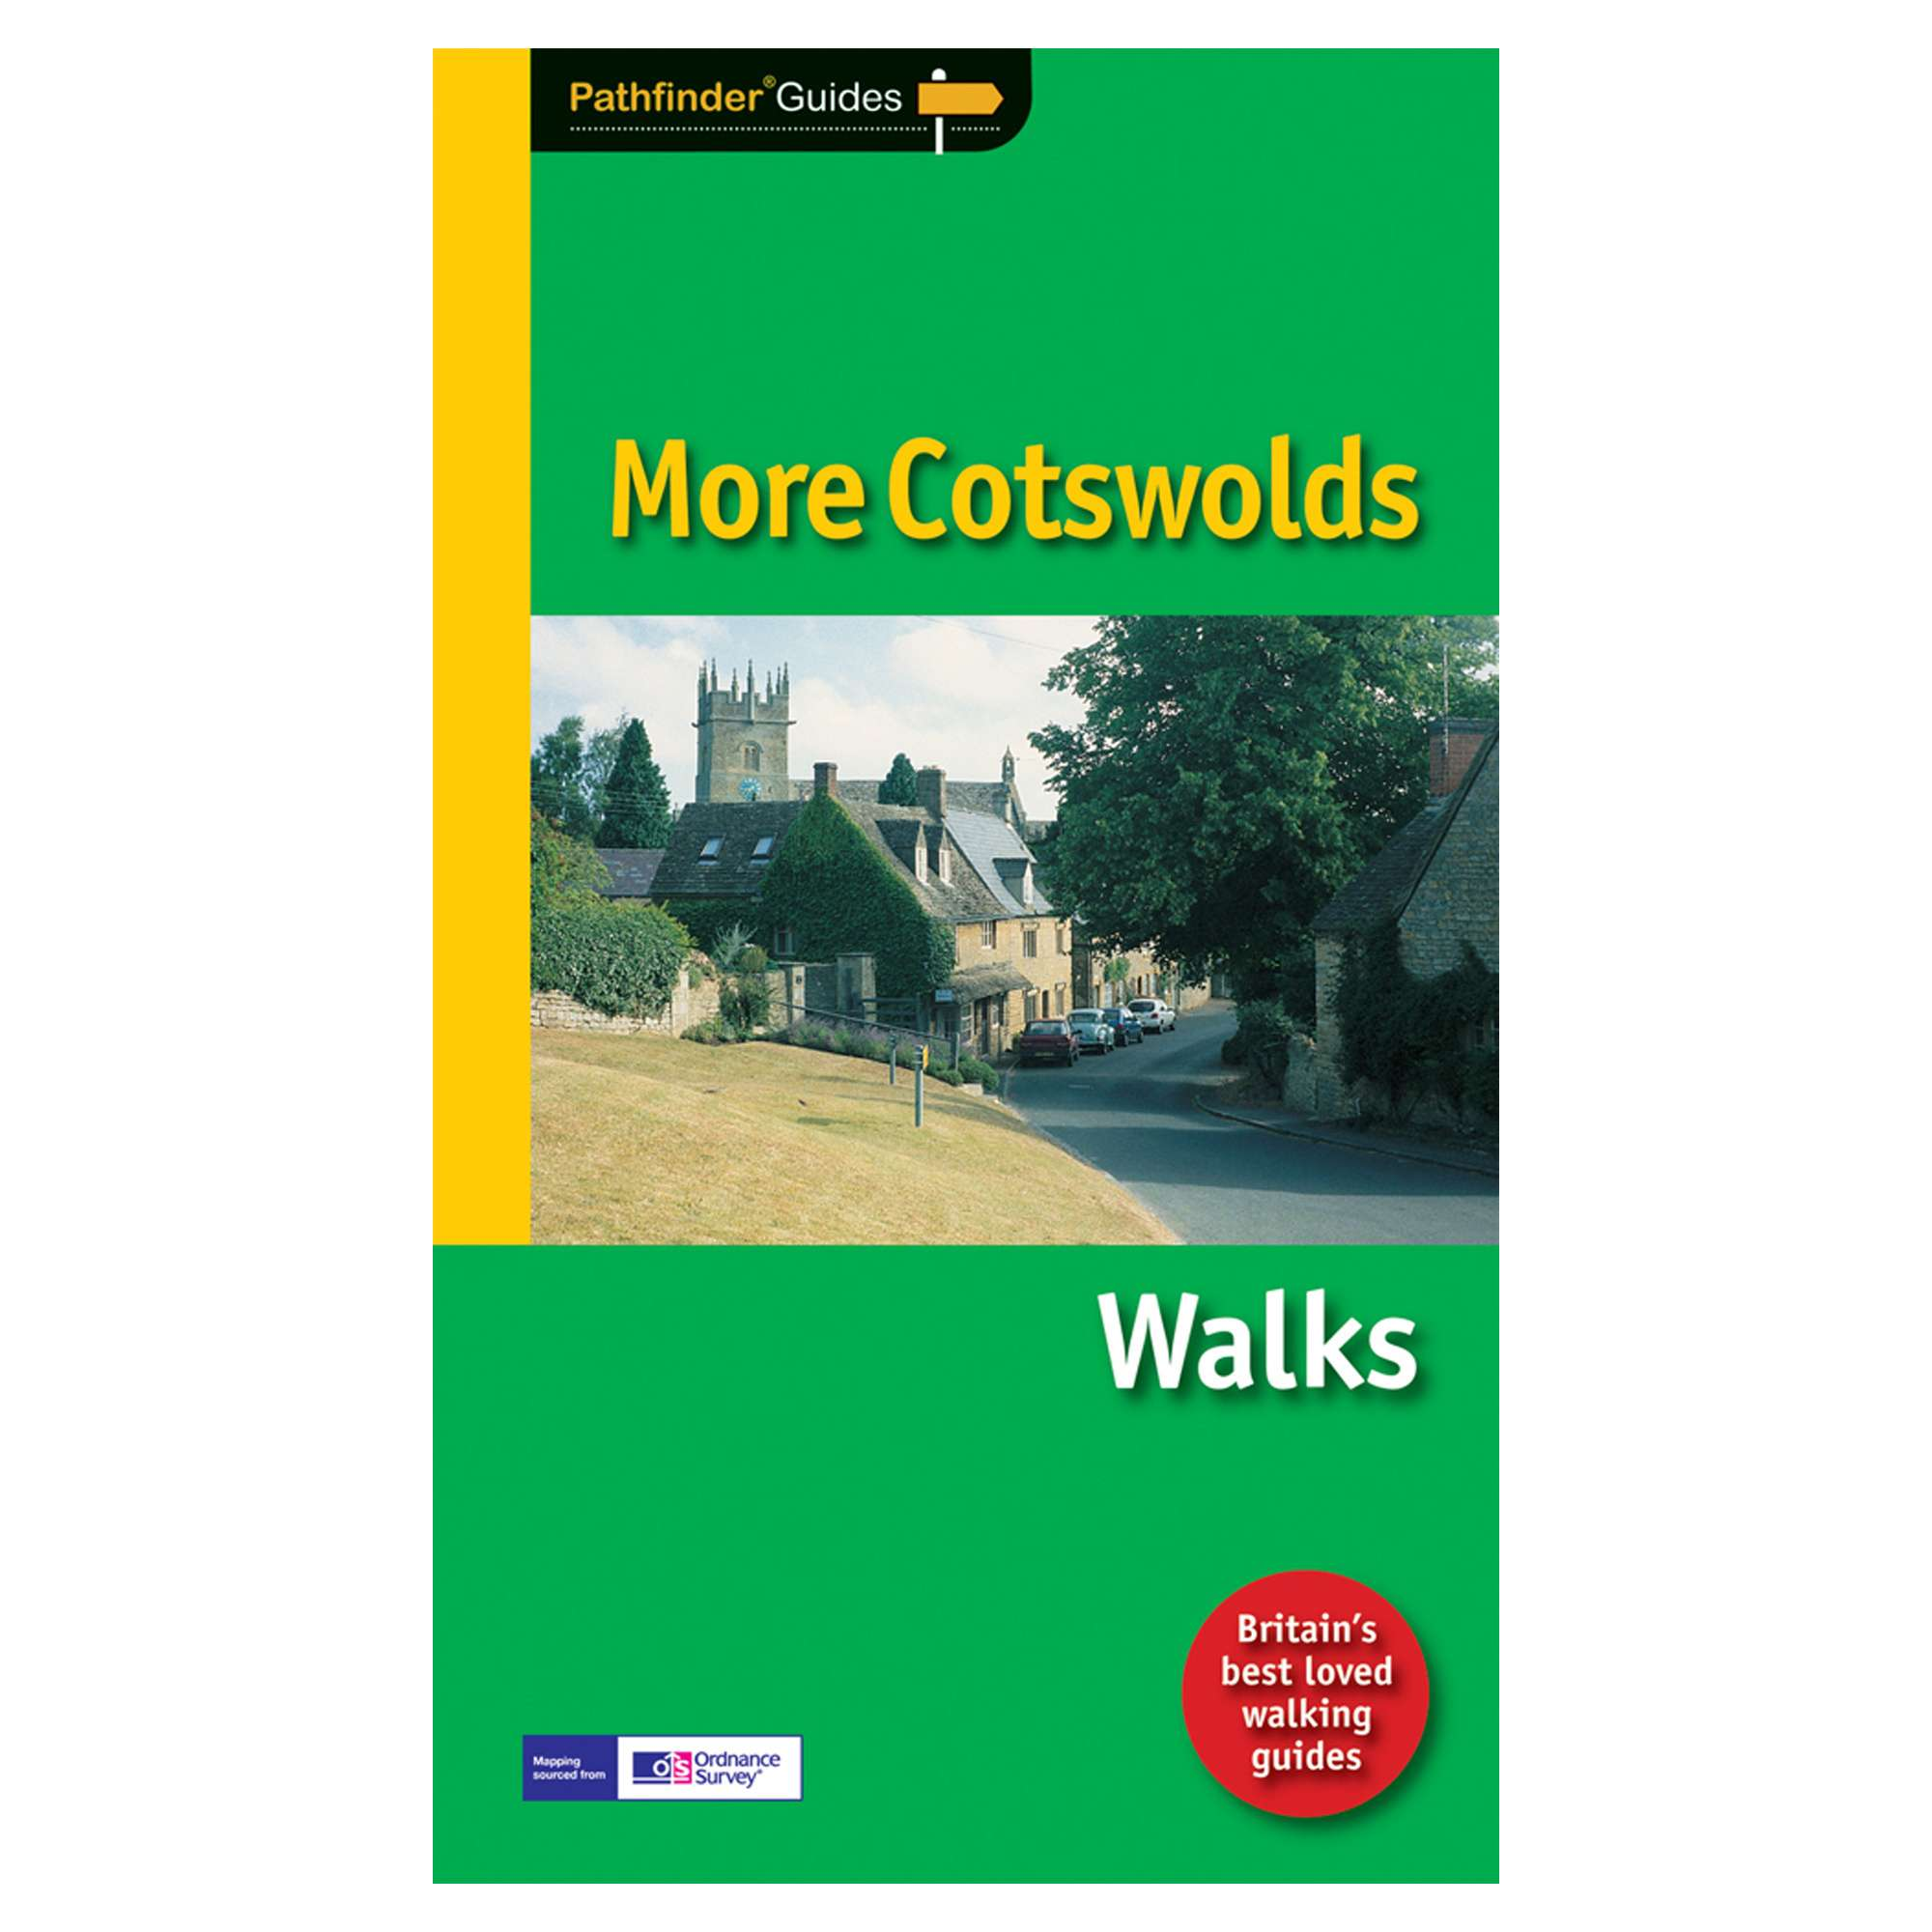 PATHFINDER More Cotswolds Walks Guide